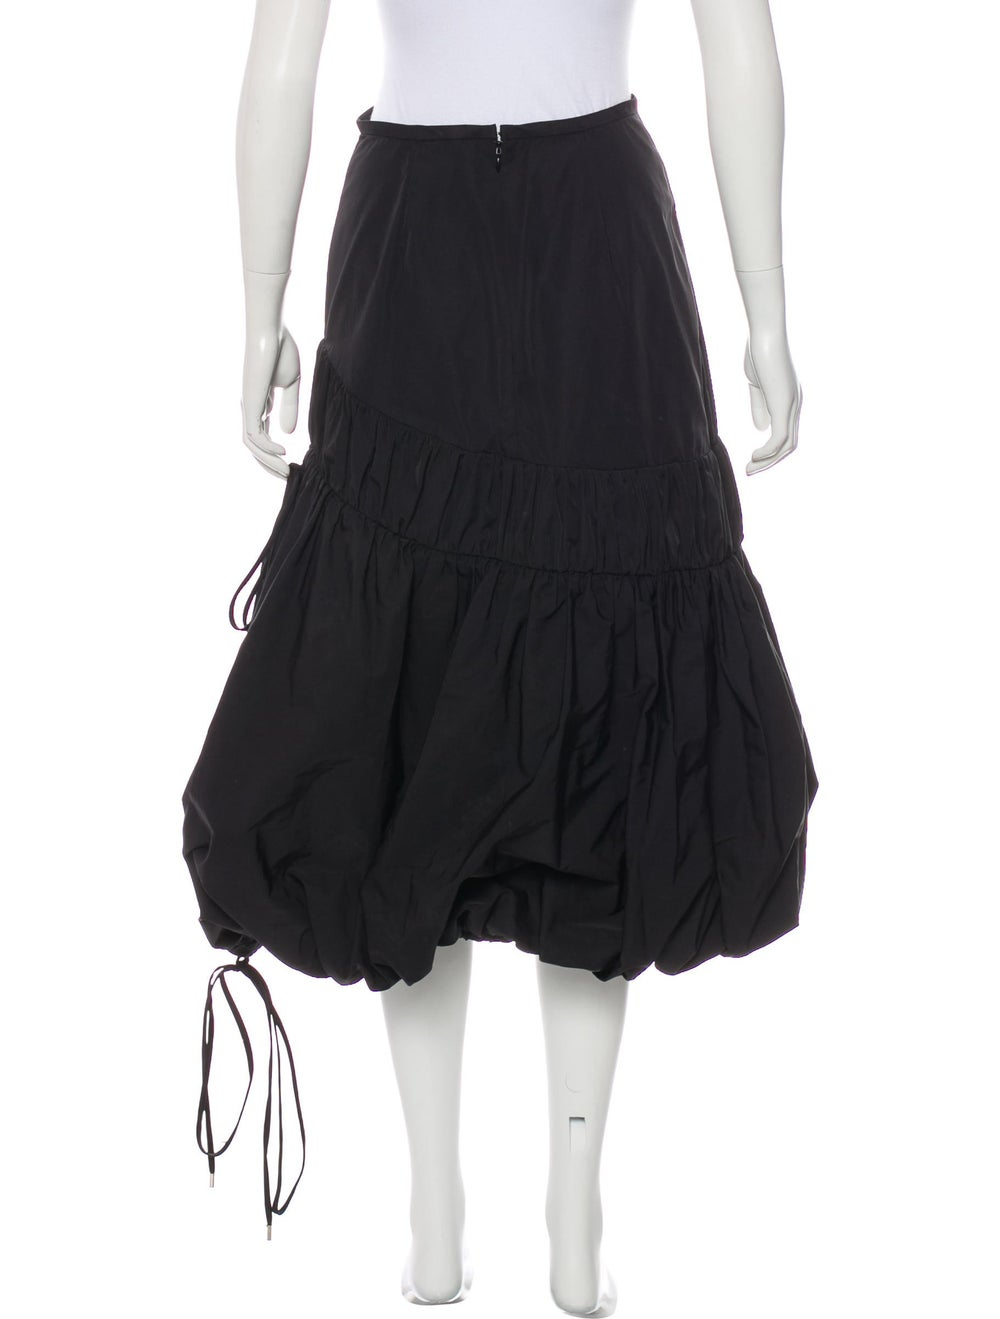 Ellery Midi Length Skirt Black - image 3